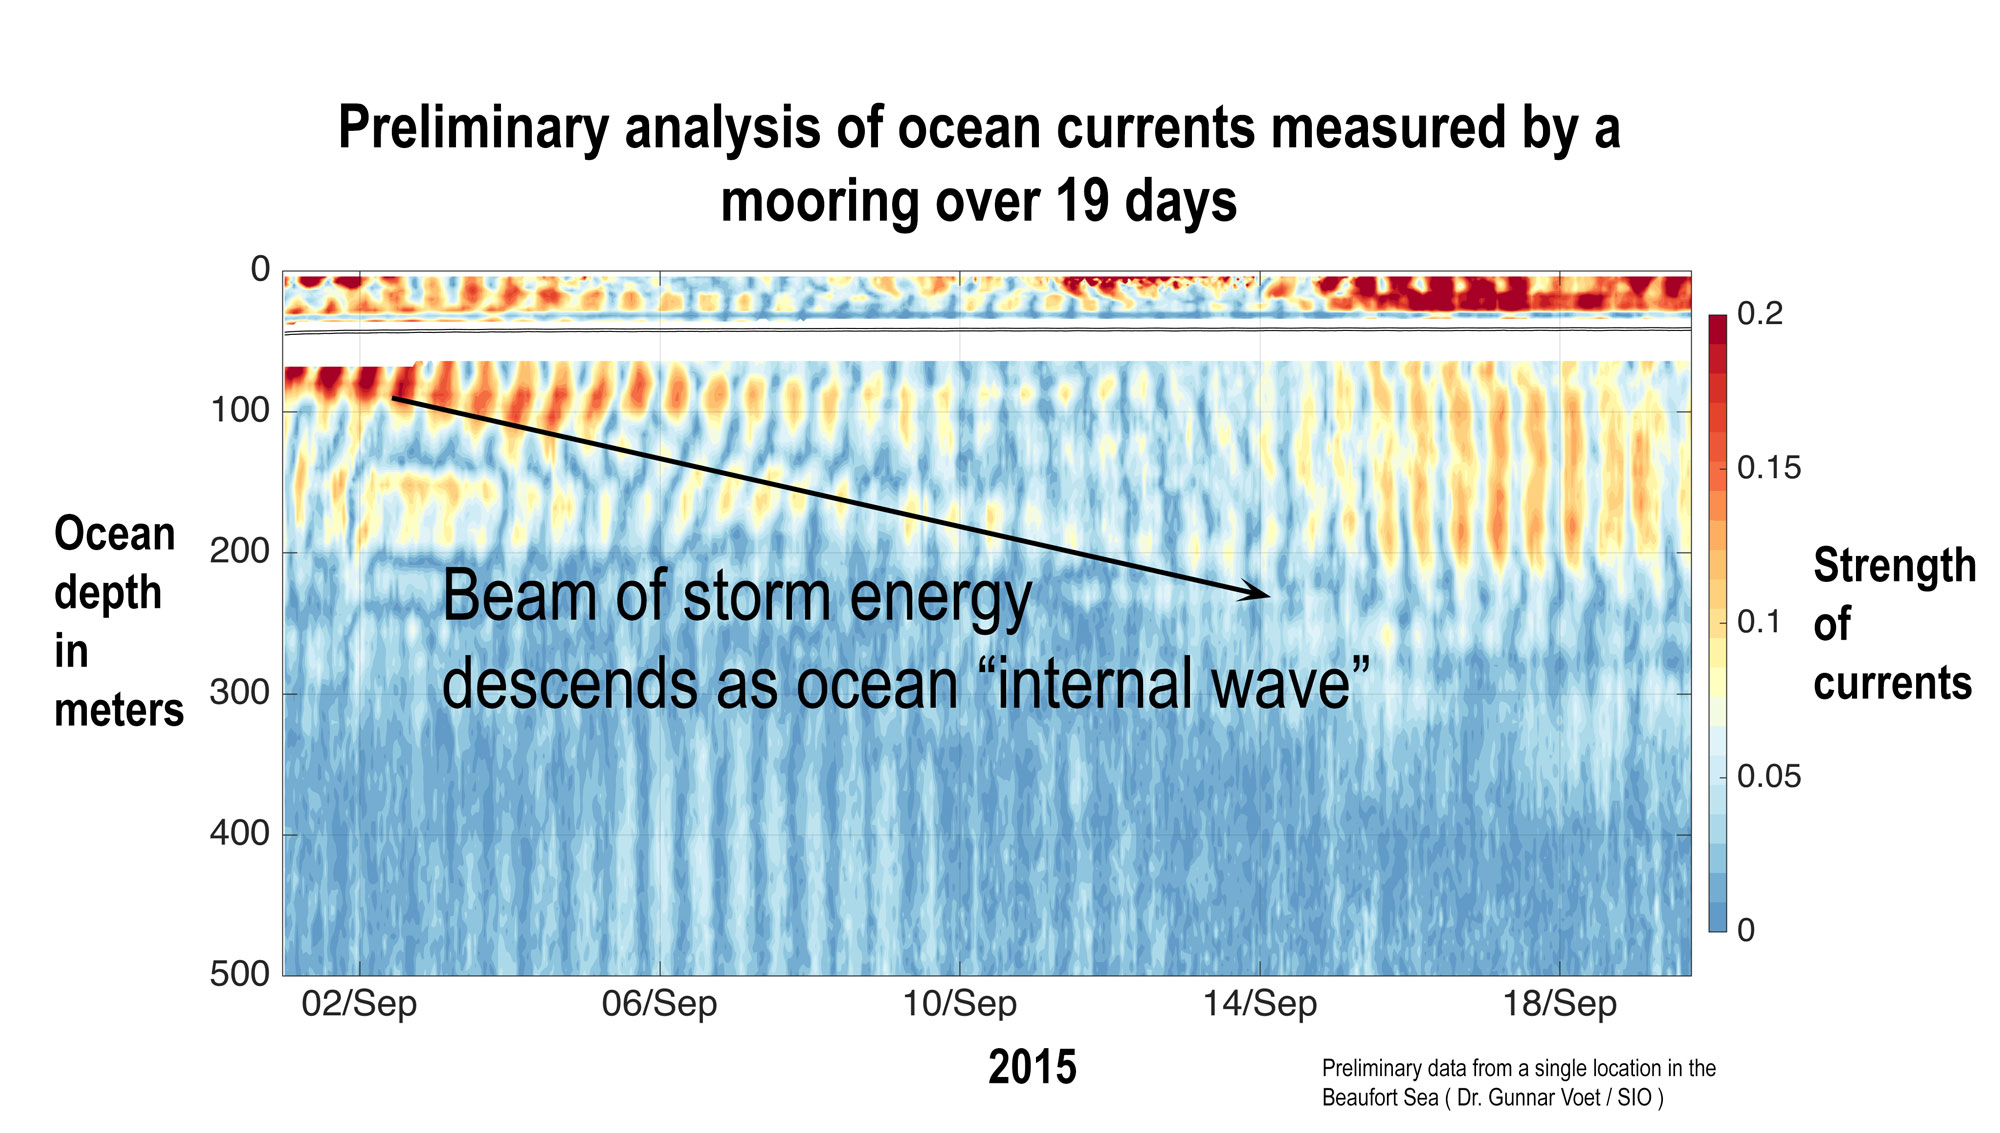 Preliminary analysis of ocean currents measured by an undersea mooring over 19 days.